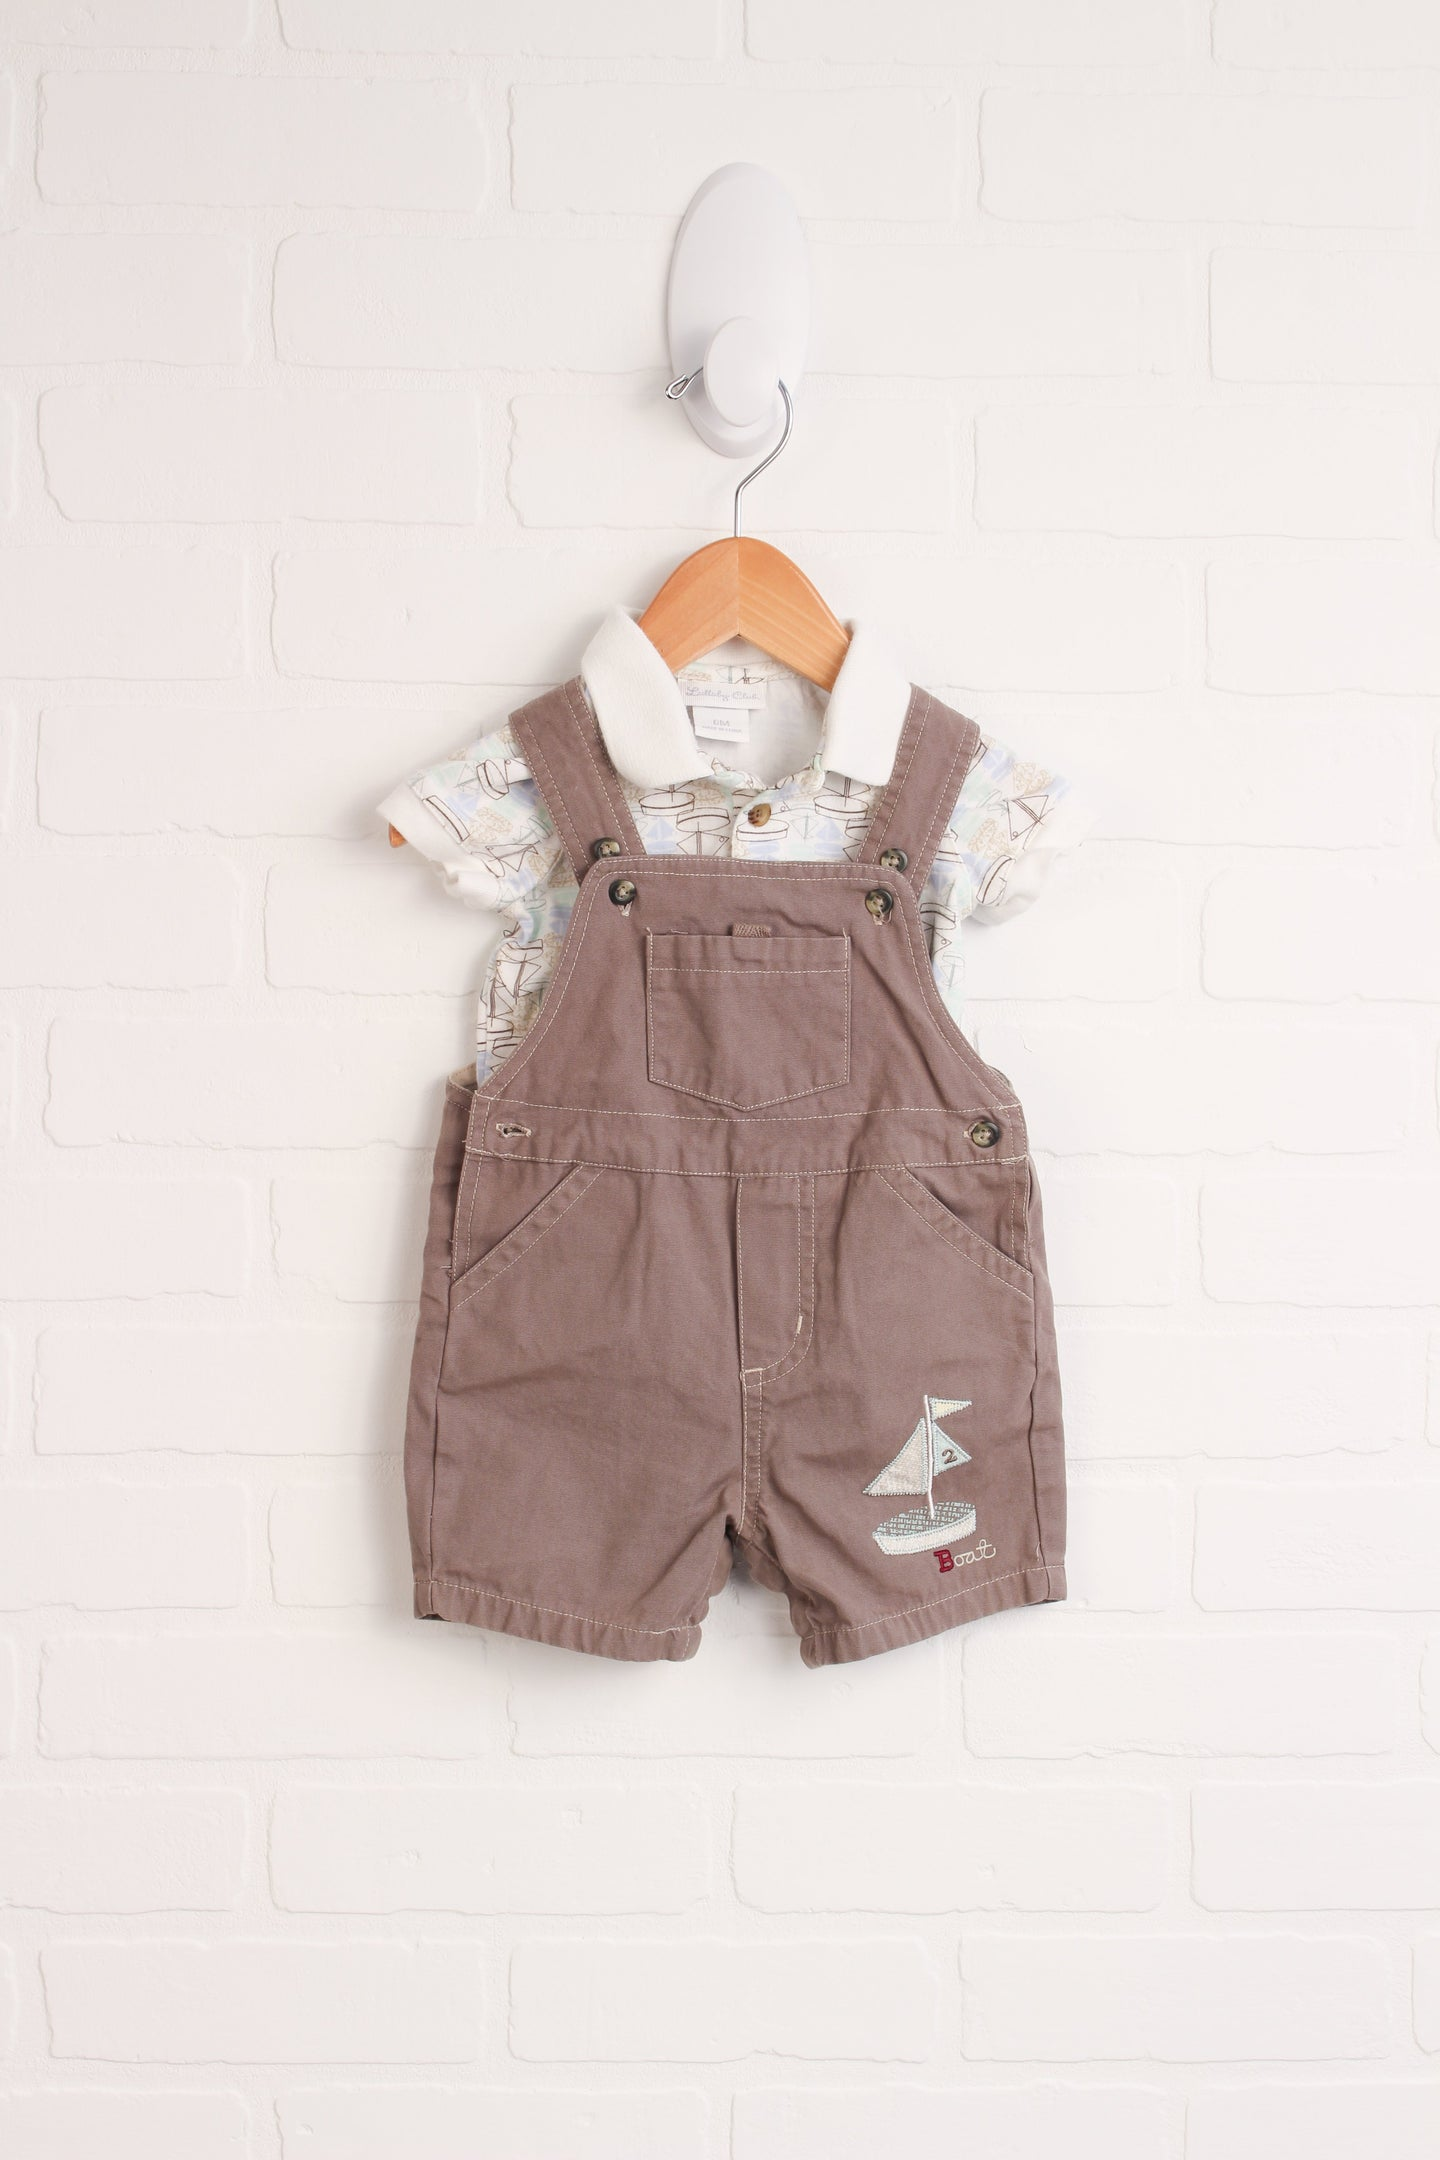 OUTFIT: Sail Boat Set (Size 6M) 2 Pieces